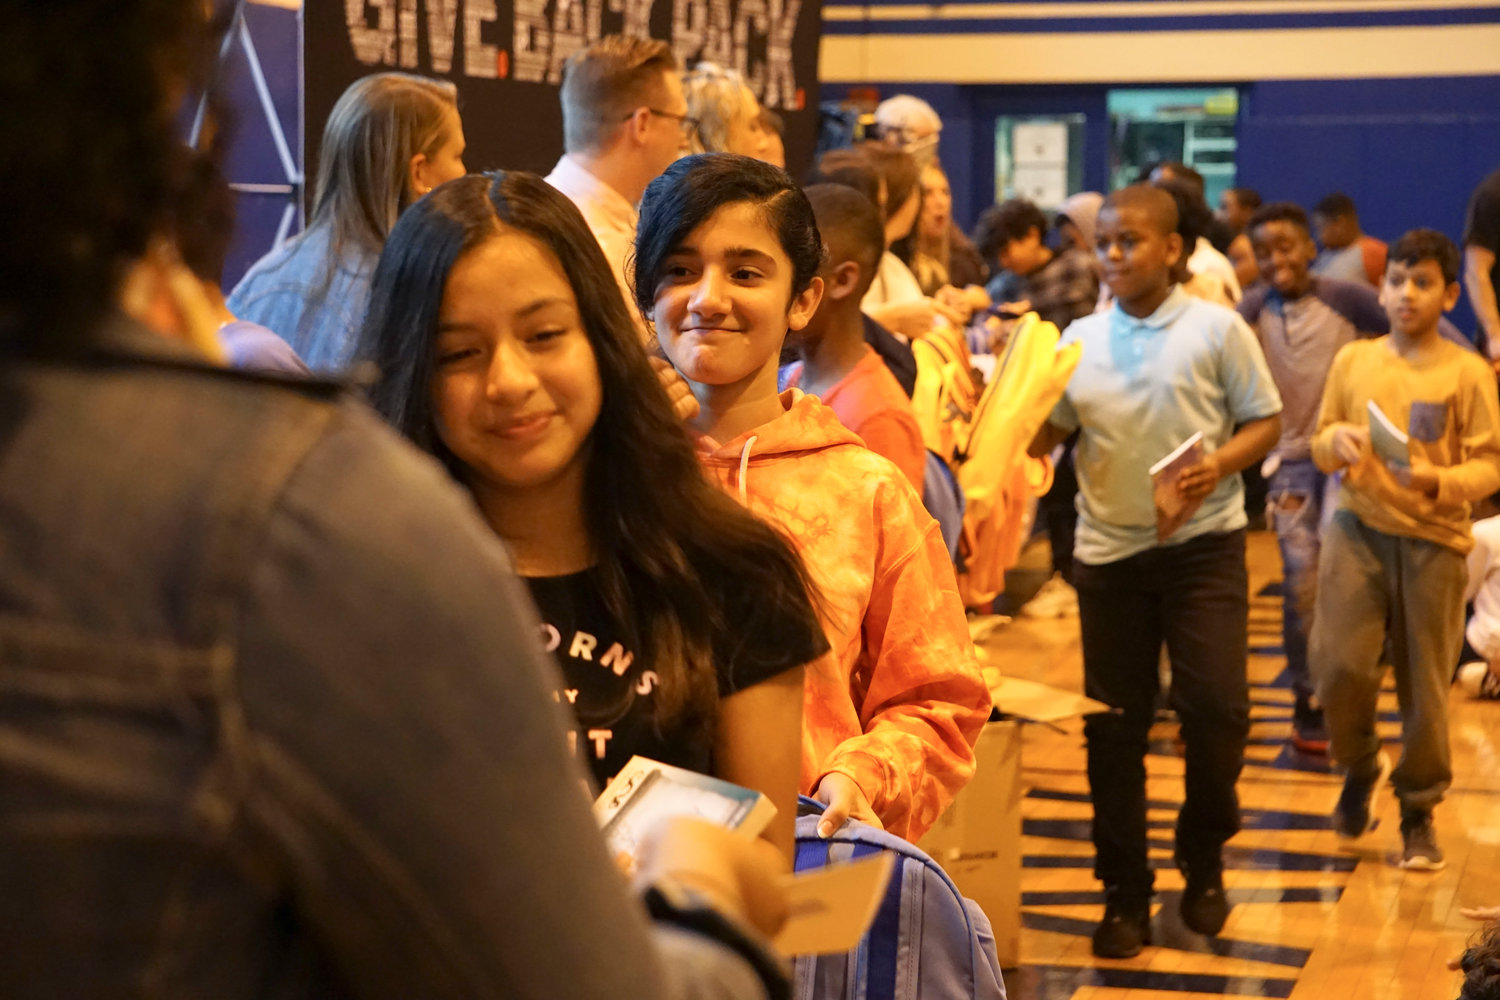 Students at Shaw Avenue Elementary School in Valley Stream received book bags, socks and elementary-aged books on Oct. 3 courtesy a partnership between State Sen. Todd Kaminsky and STATE Bags, an online book bag shop that holds charity donation events.